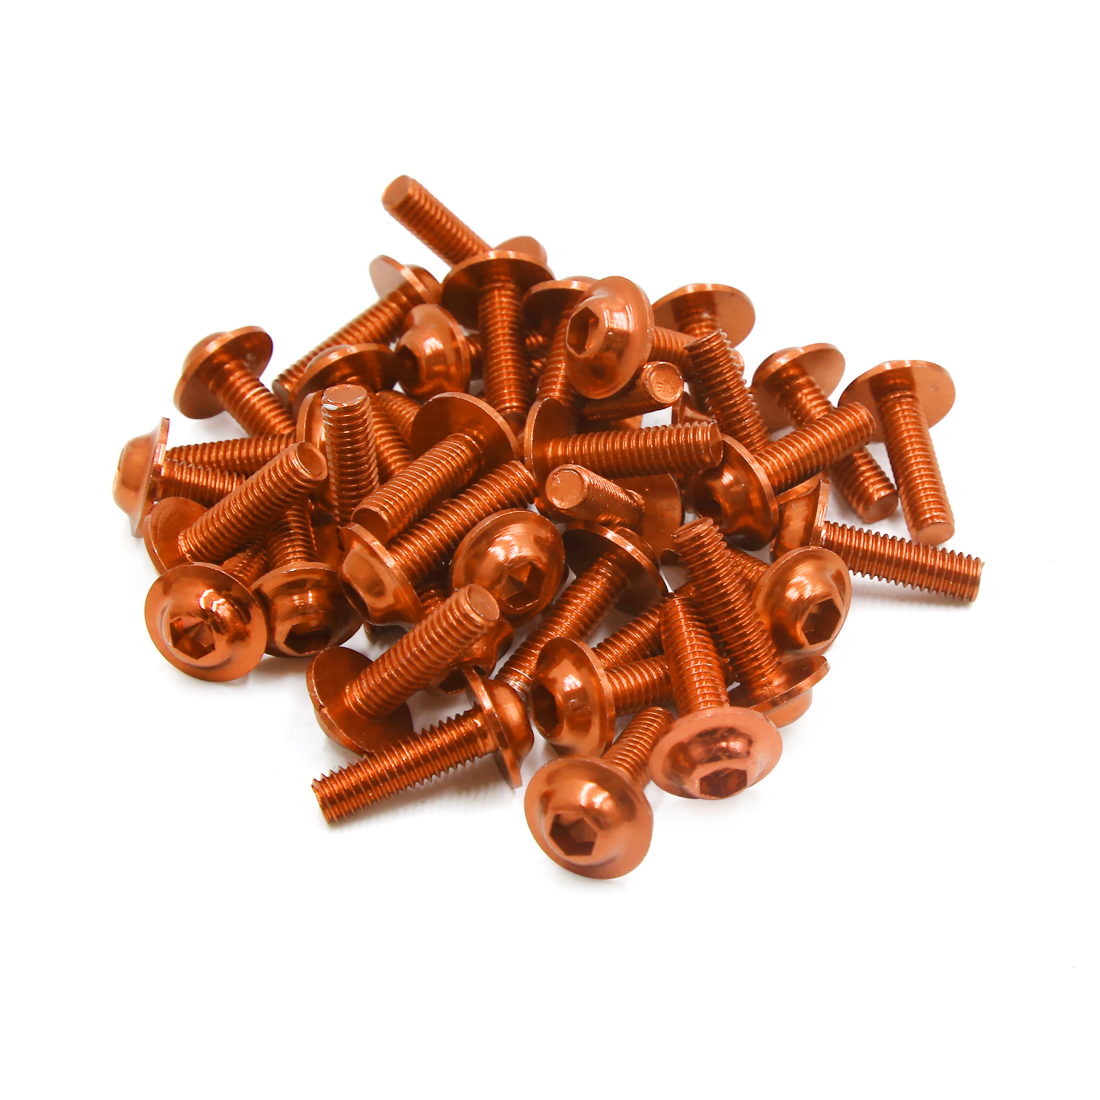 40pcs Orange Aluminum Alloy Motorcycle Hex Socket Head Bolts Screws M6 x 20